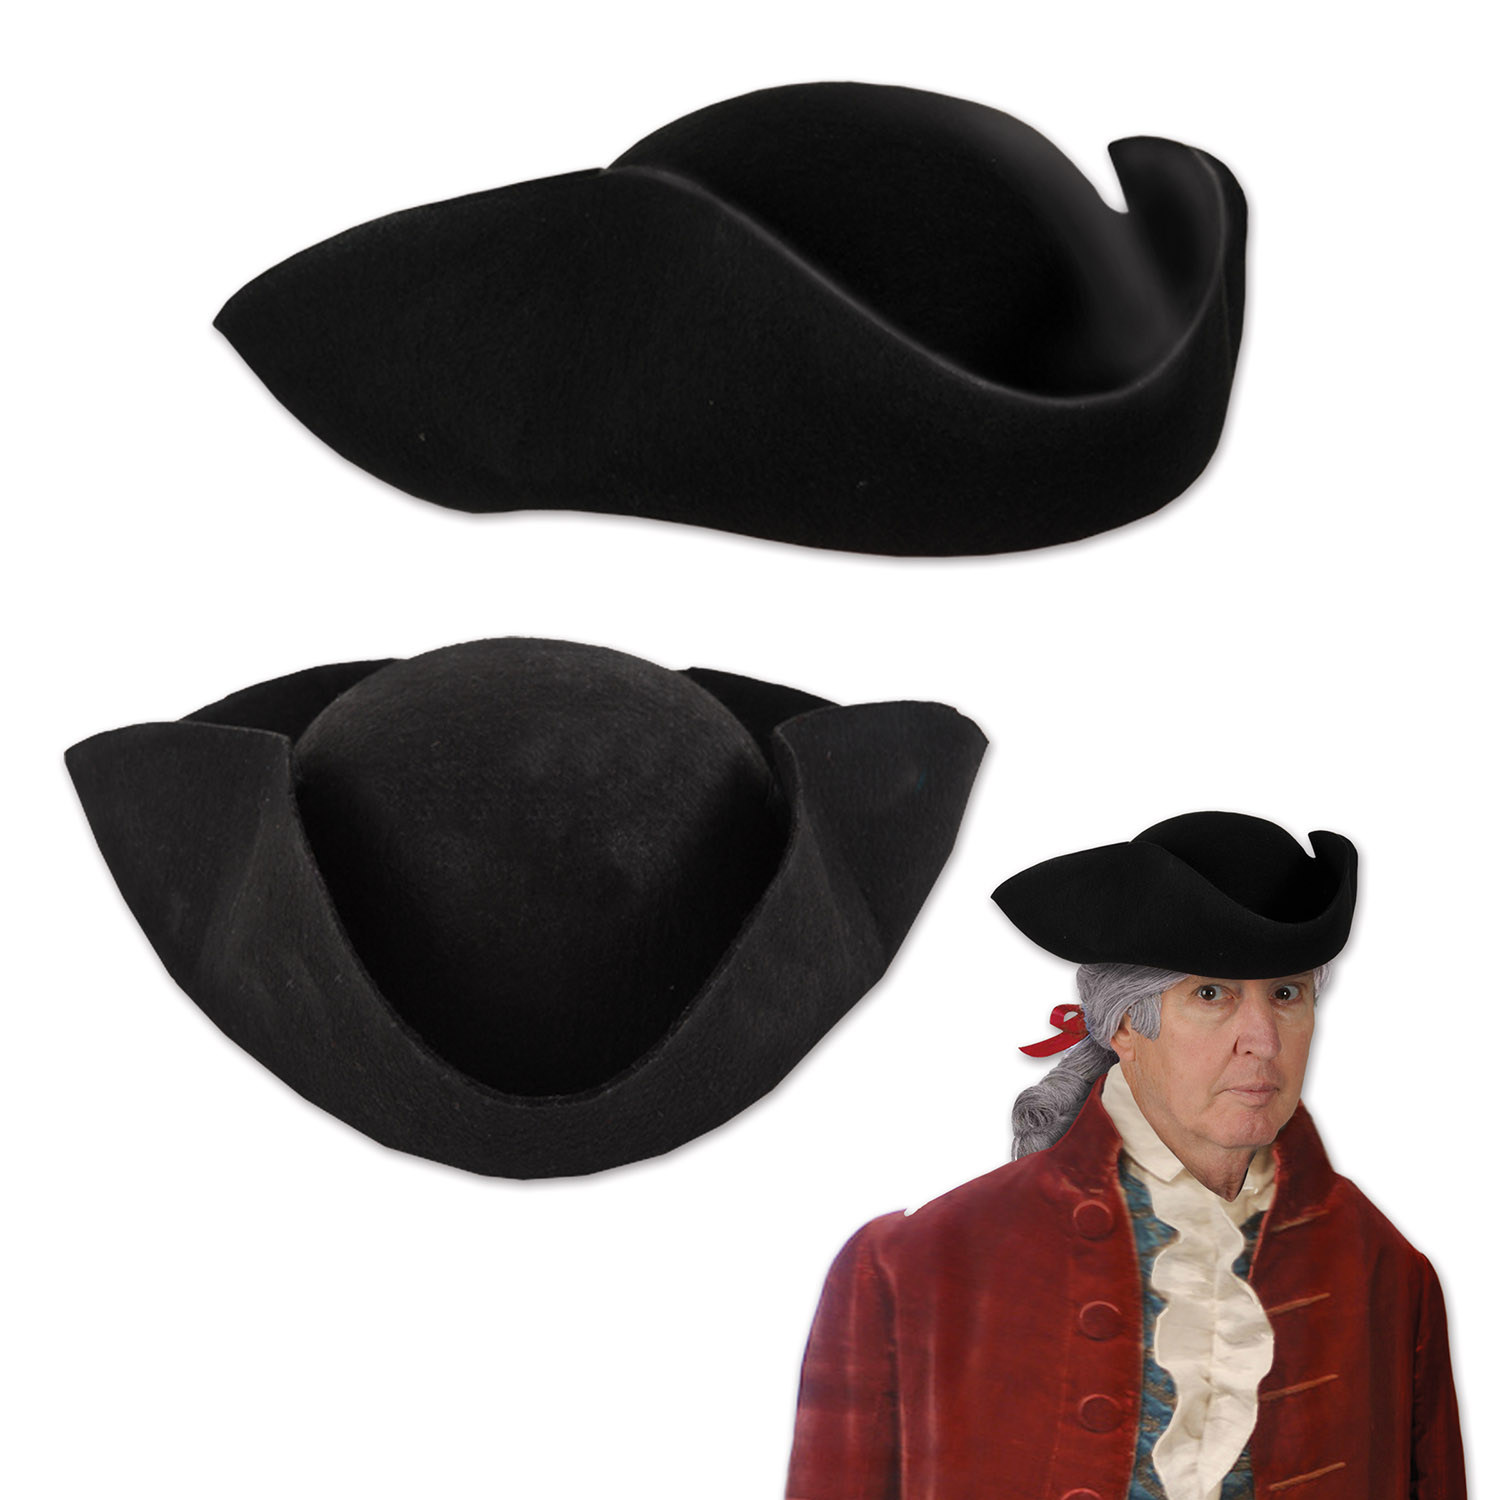 Felt Tricorn Hat (Pack of 6) Felt Tricorn Hat, patriotic, july 4th, party favor, wholesale, inexpensive, bulk